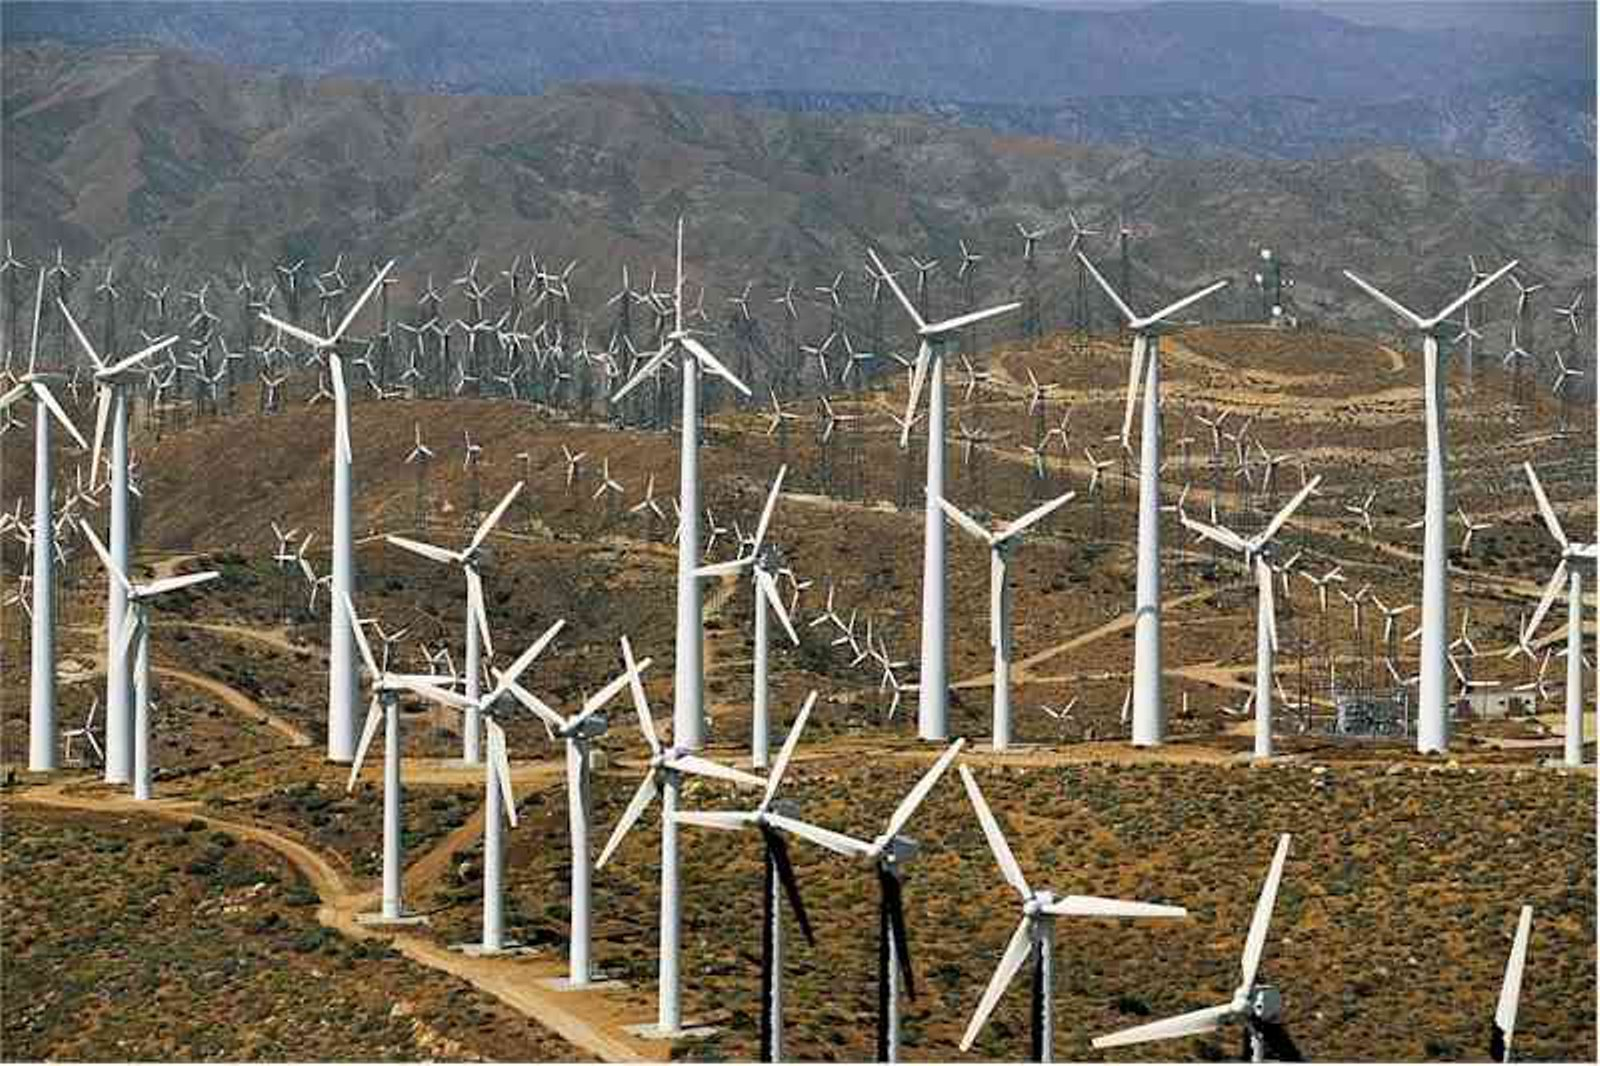 energy_windmills_california_1121719.jpg